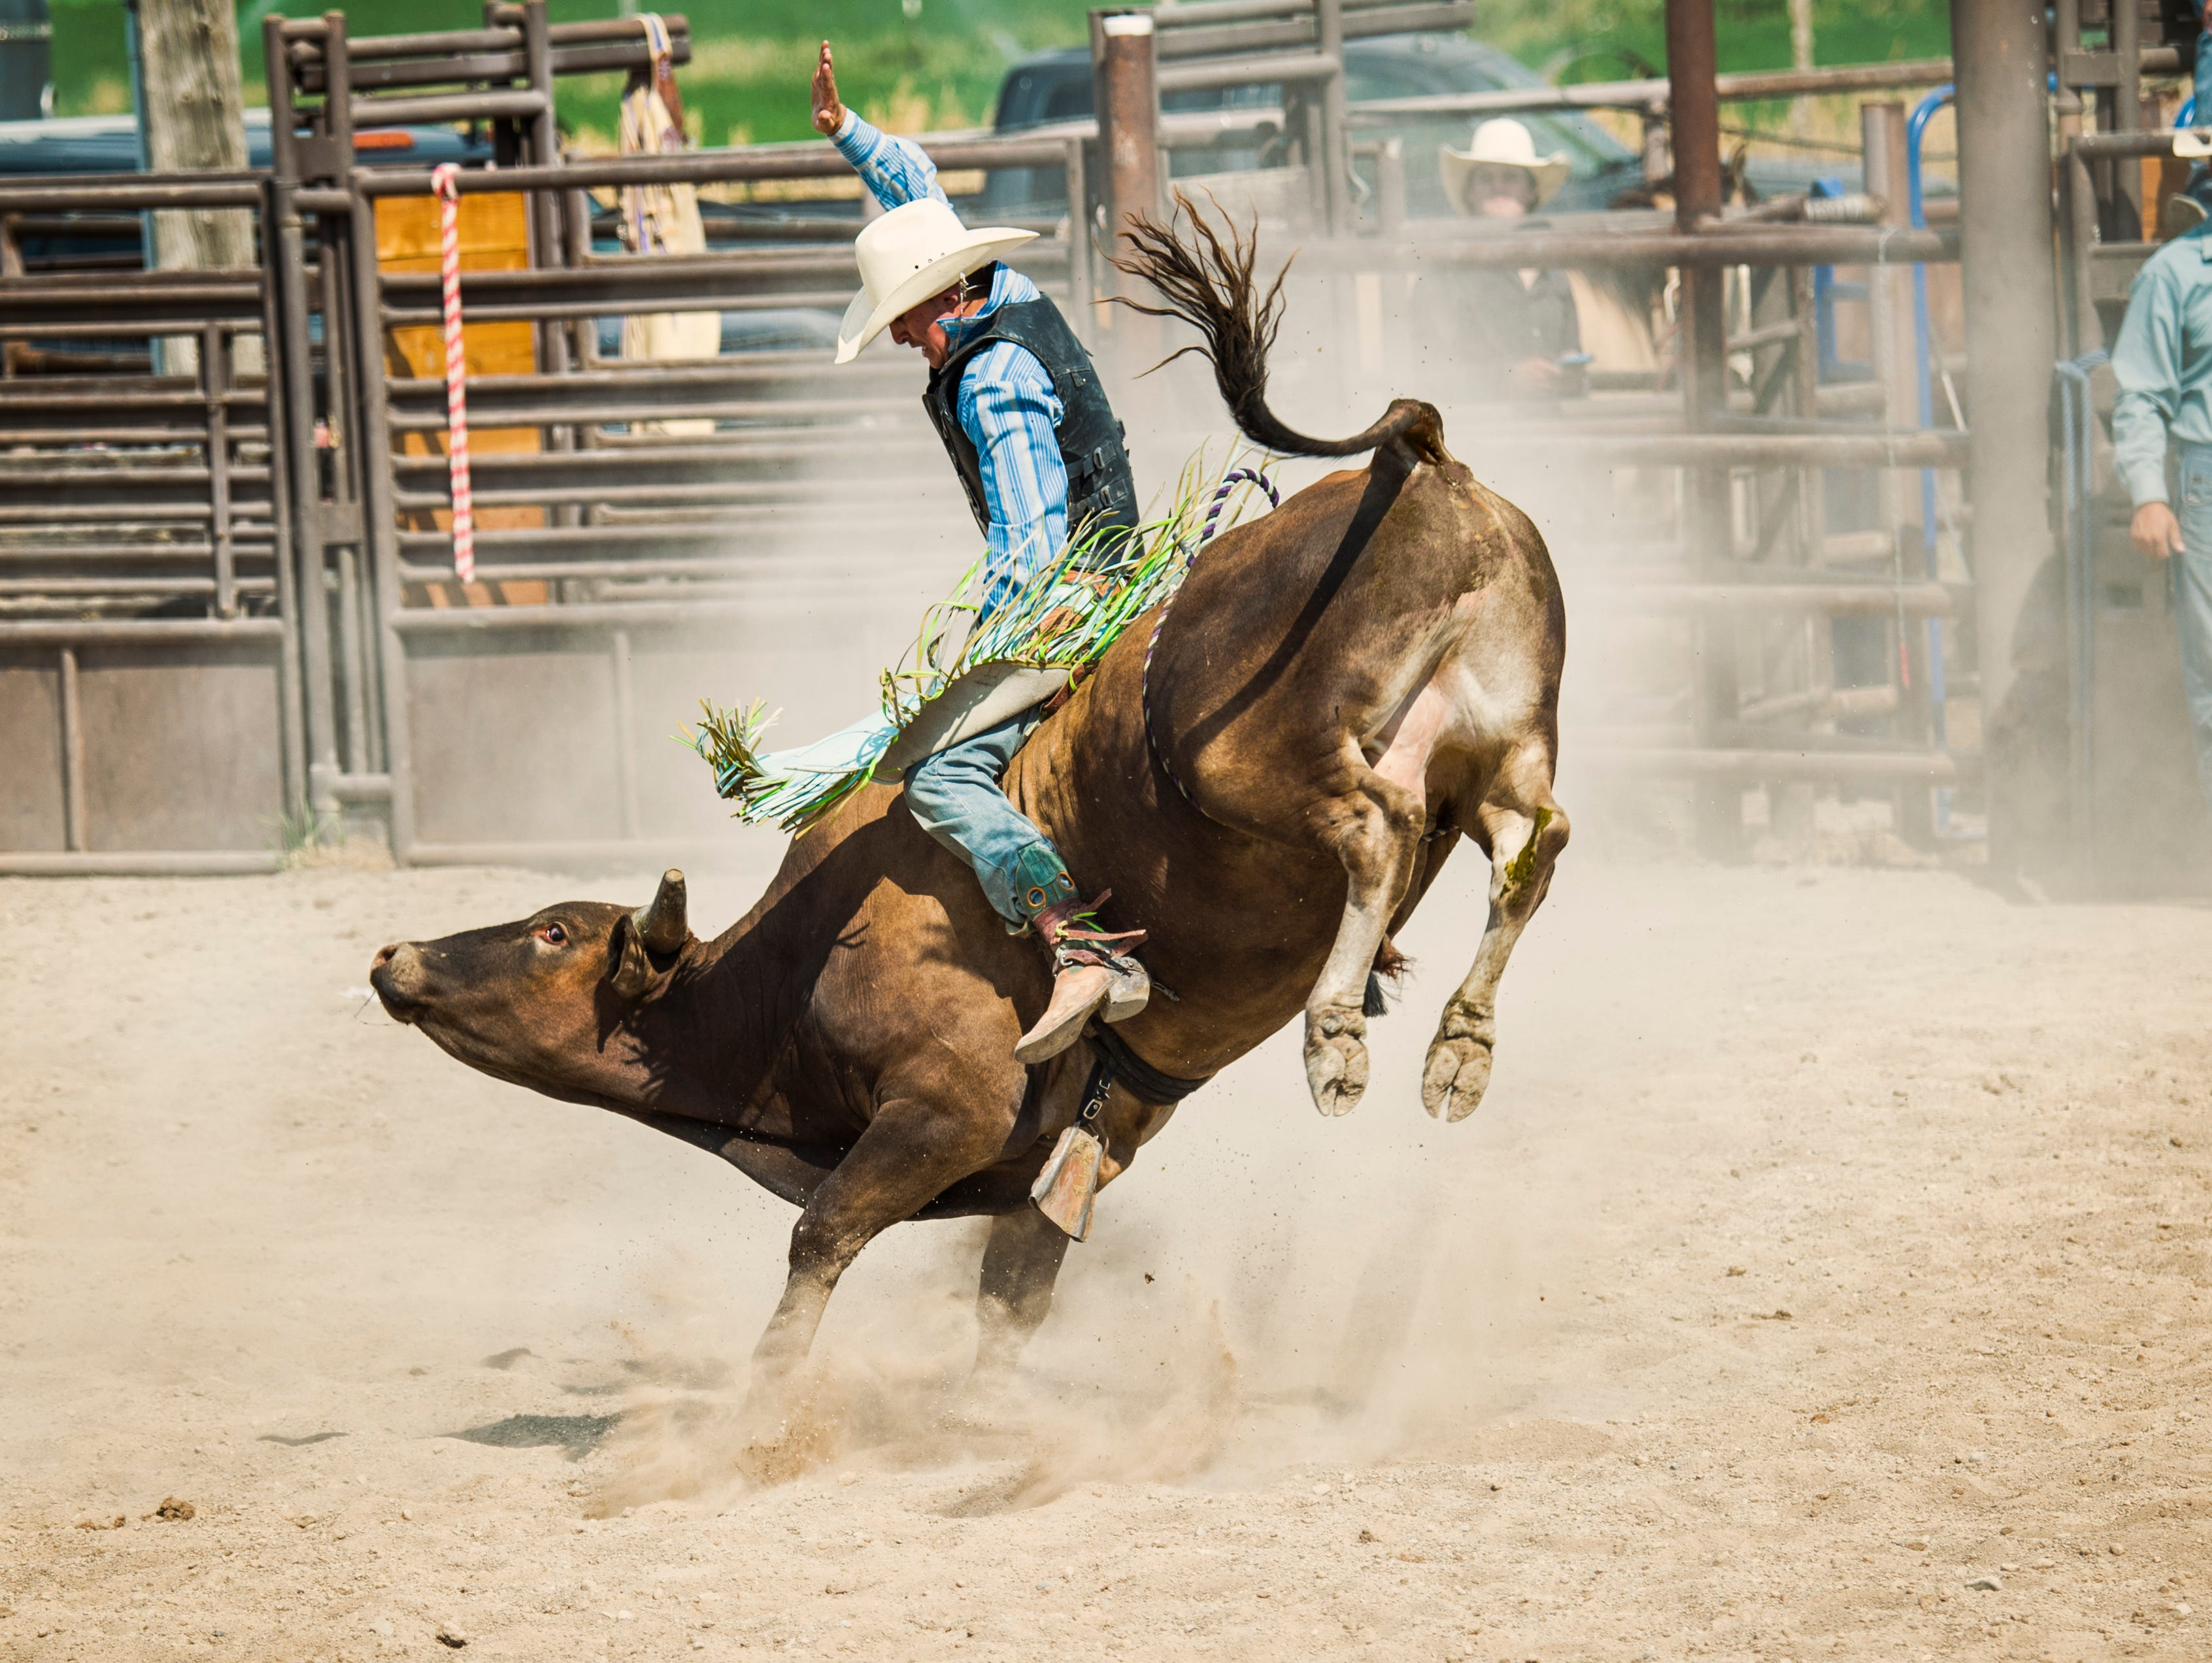 Enter to win a 1 of 5 pair of tickets for The Reno Rodeo on Thursday, 6/21! Enter 6/12-6/17!